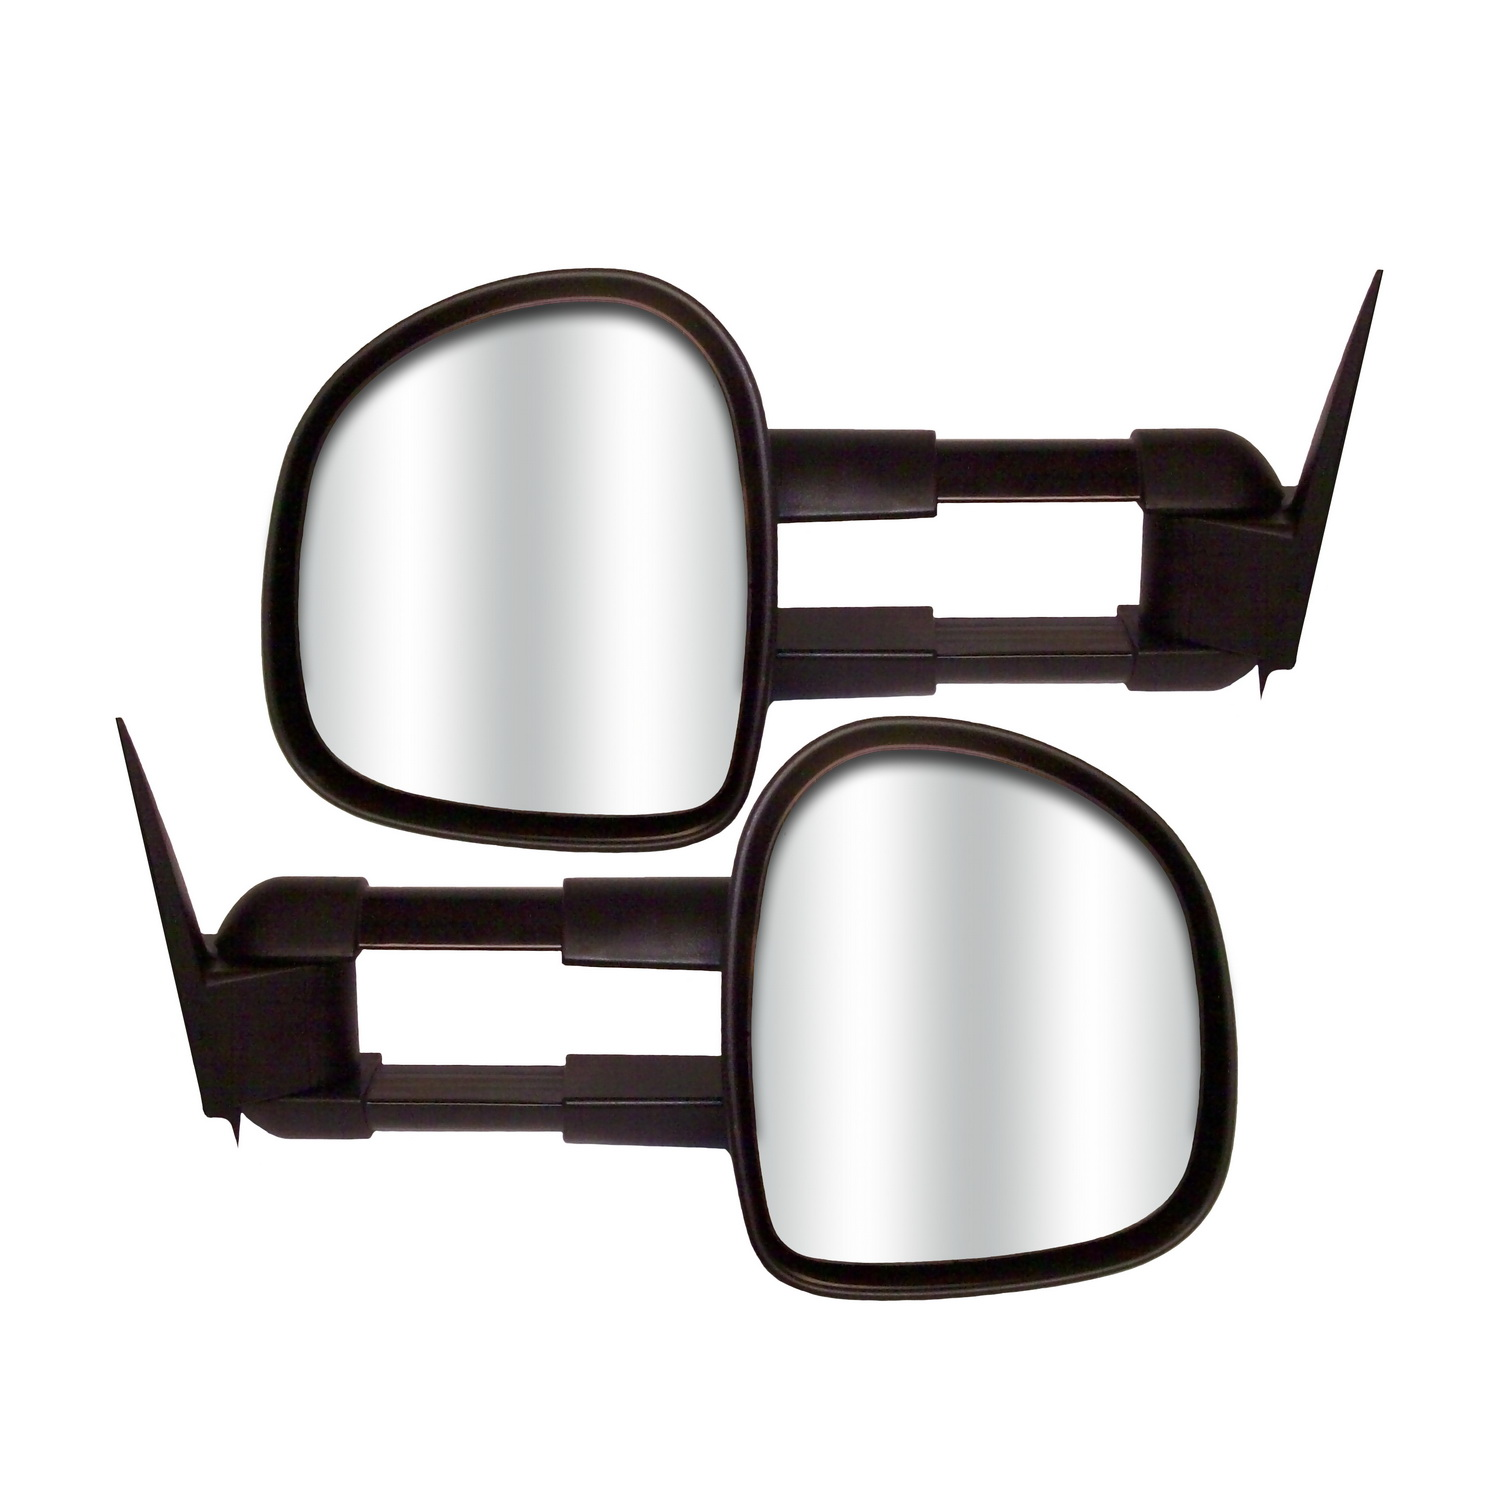 CIPA Mirrors 73500 Extendable Replacement Mirror Set